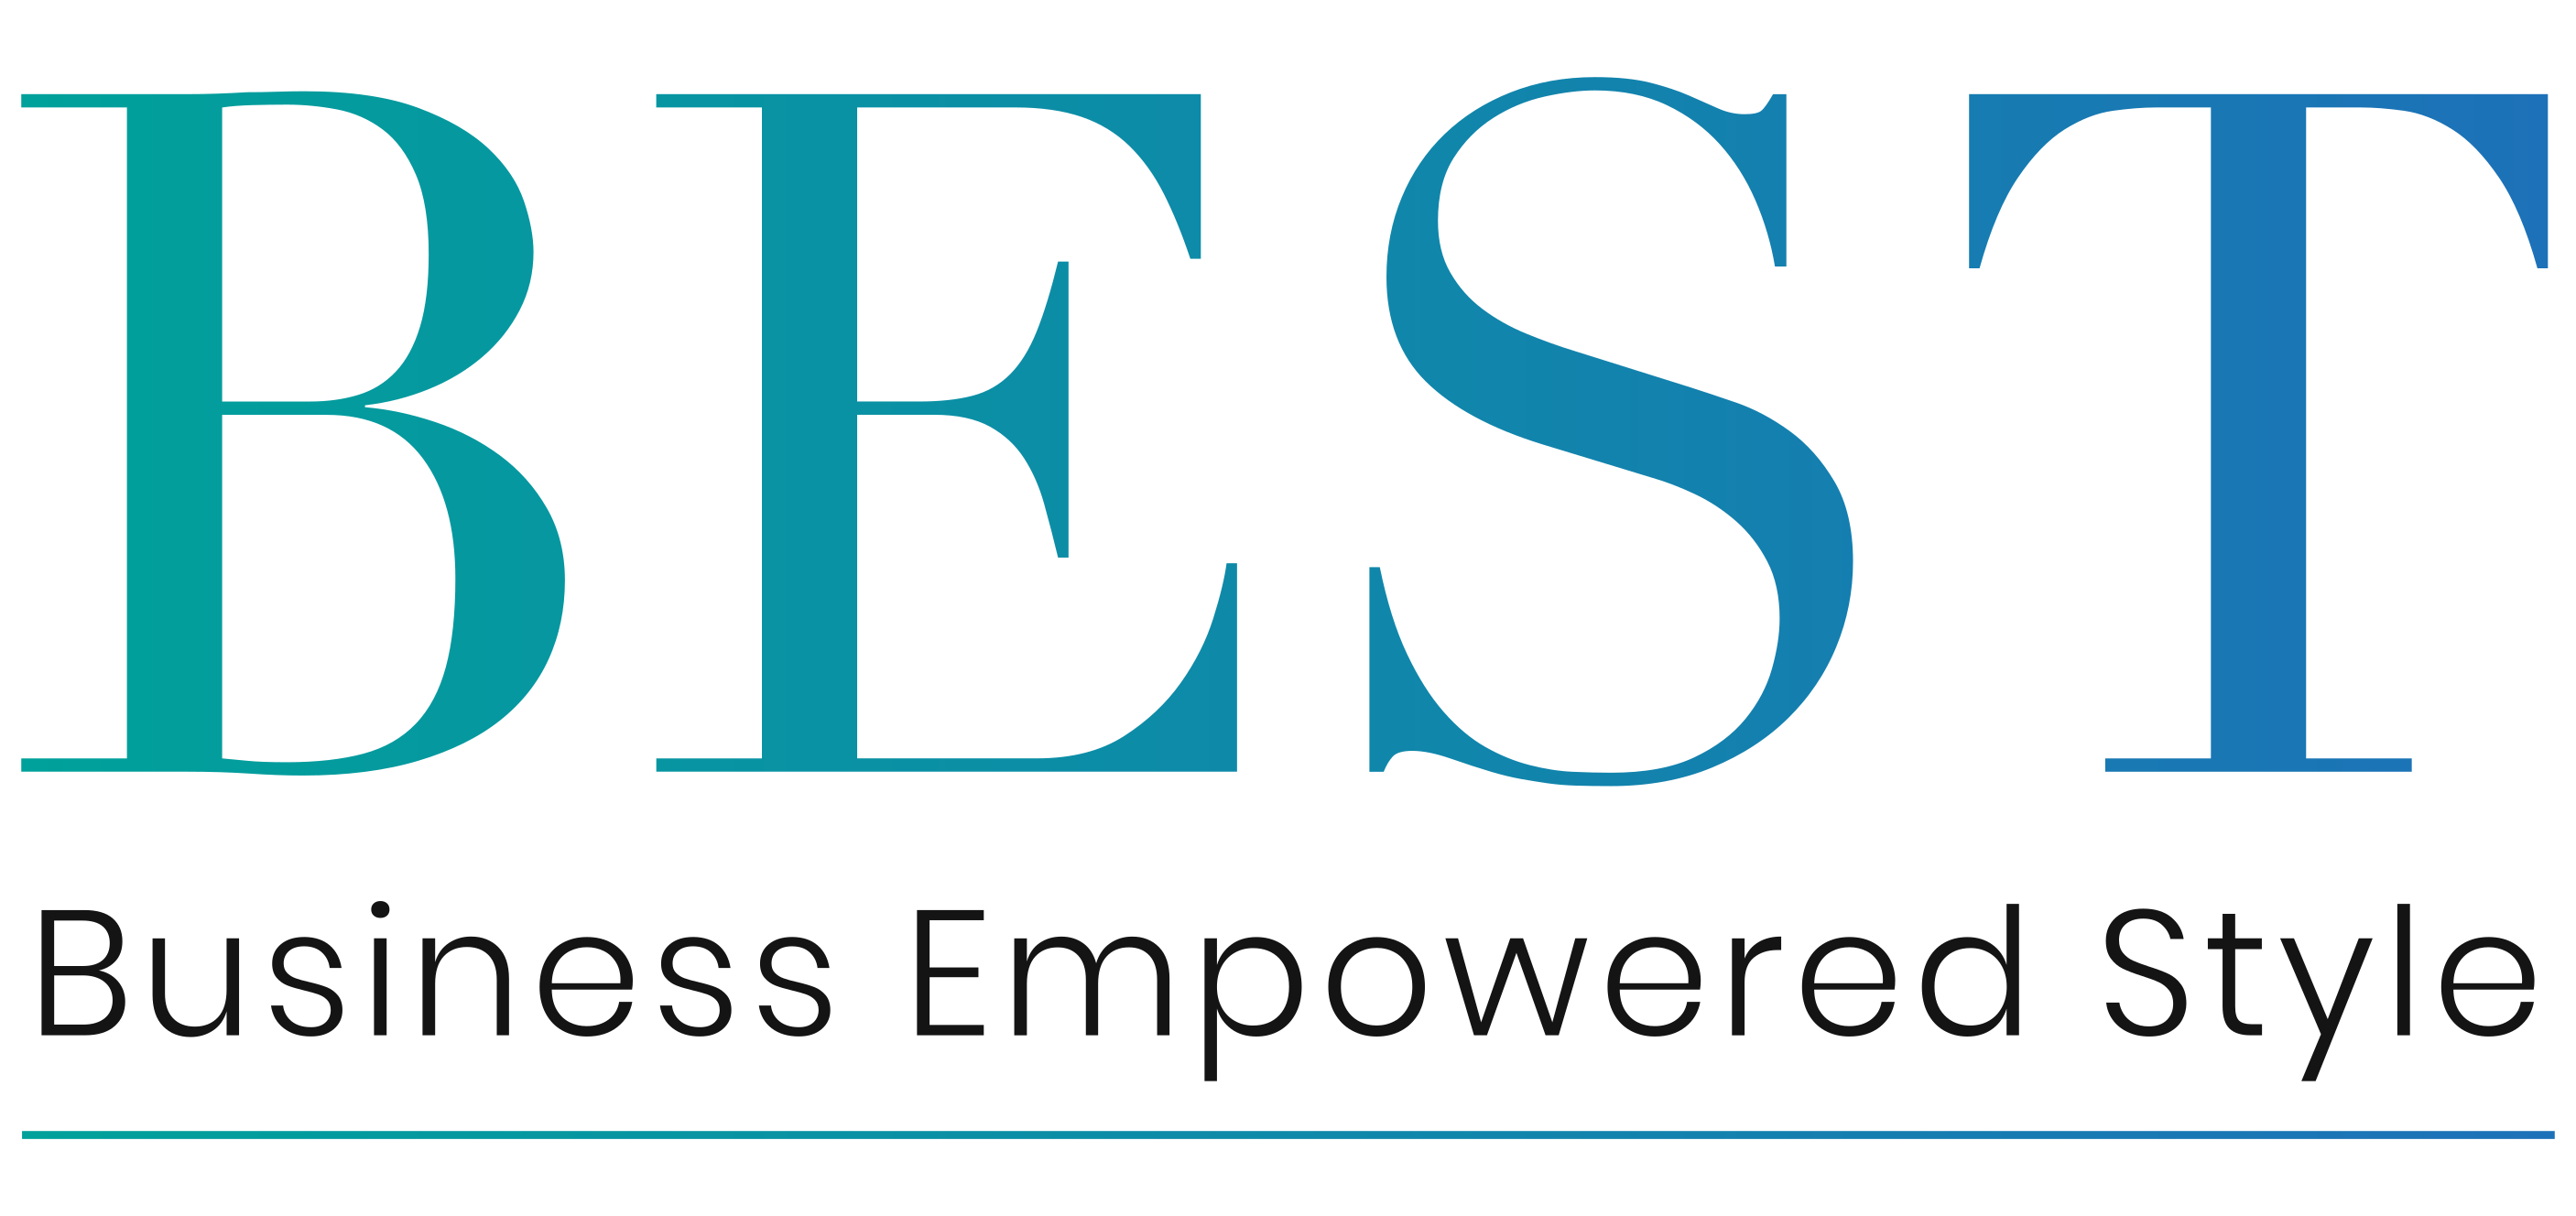 BEST – Business Empowered Style